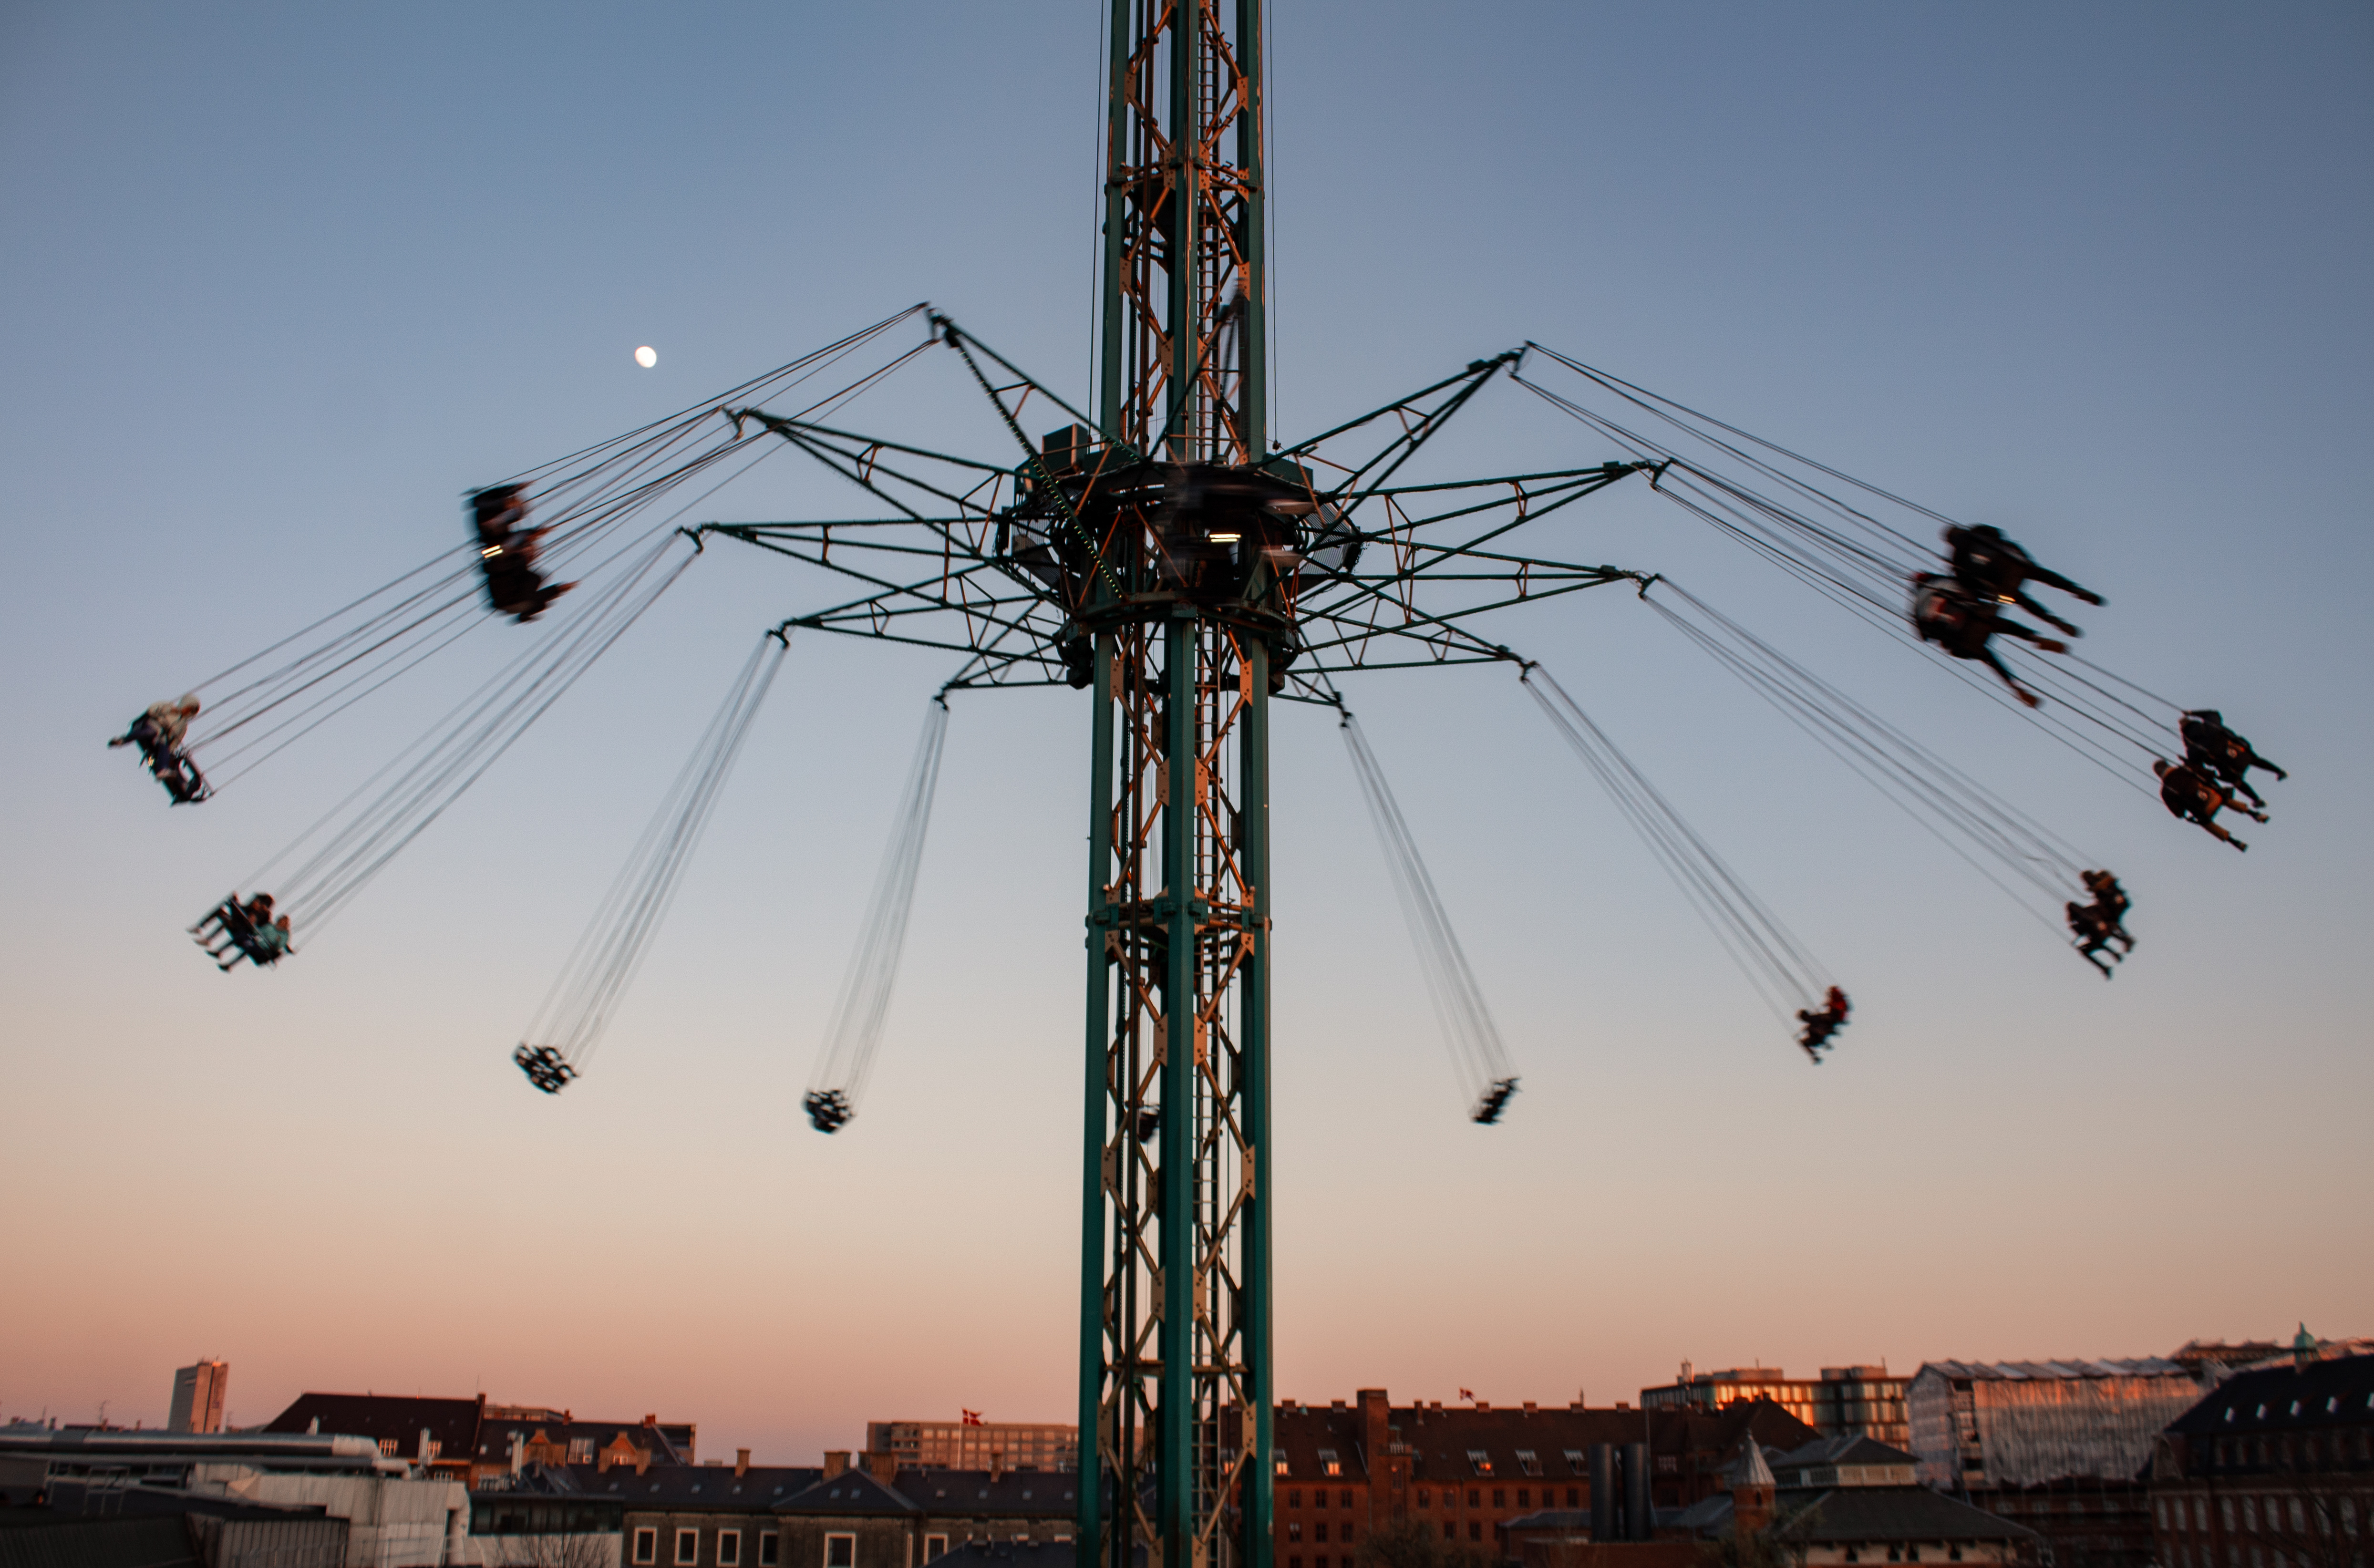 Moon and amusement park ride in Copenhagen at dusk, city architecture